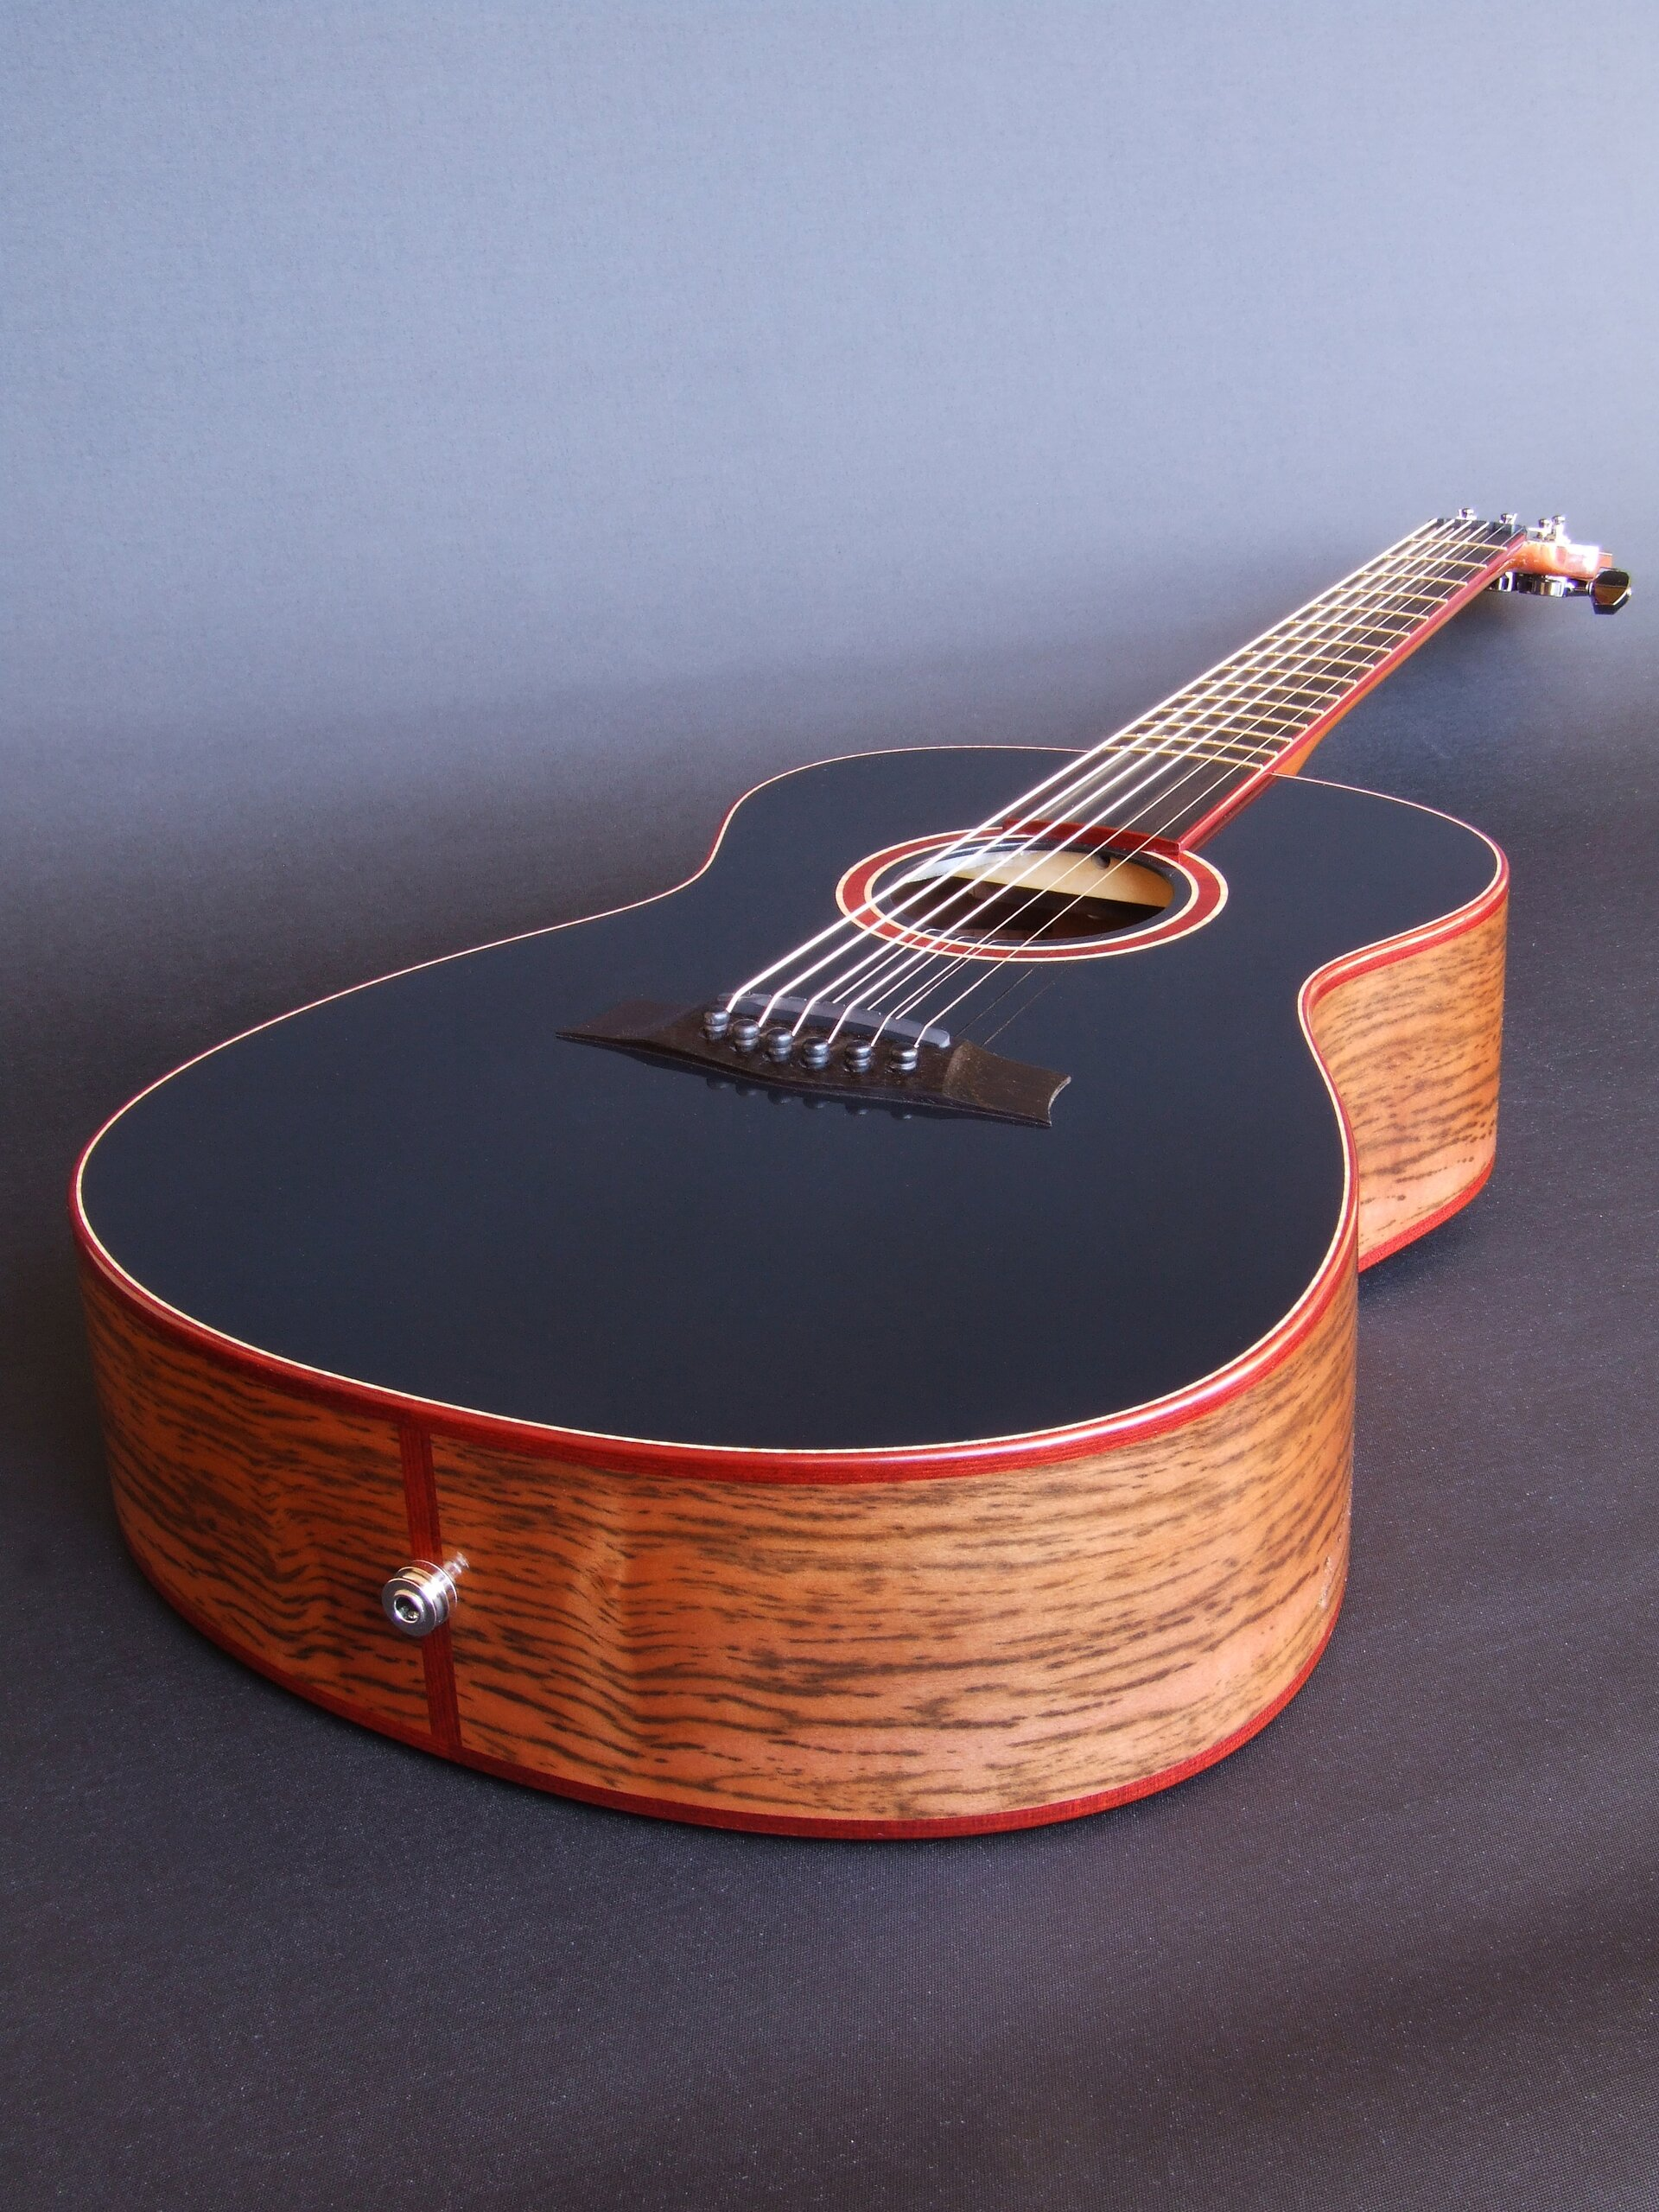 Black topped tiger mytle bodied super-parlor wedged guitar